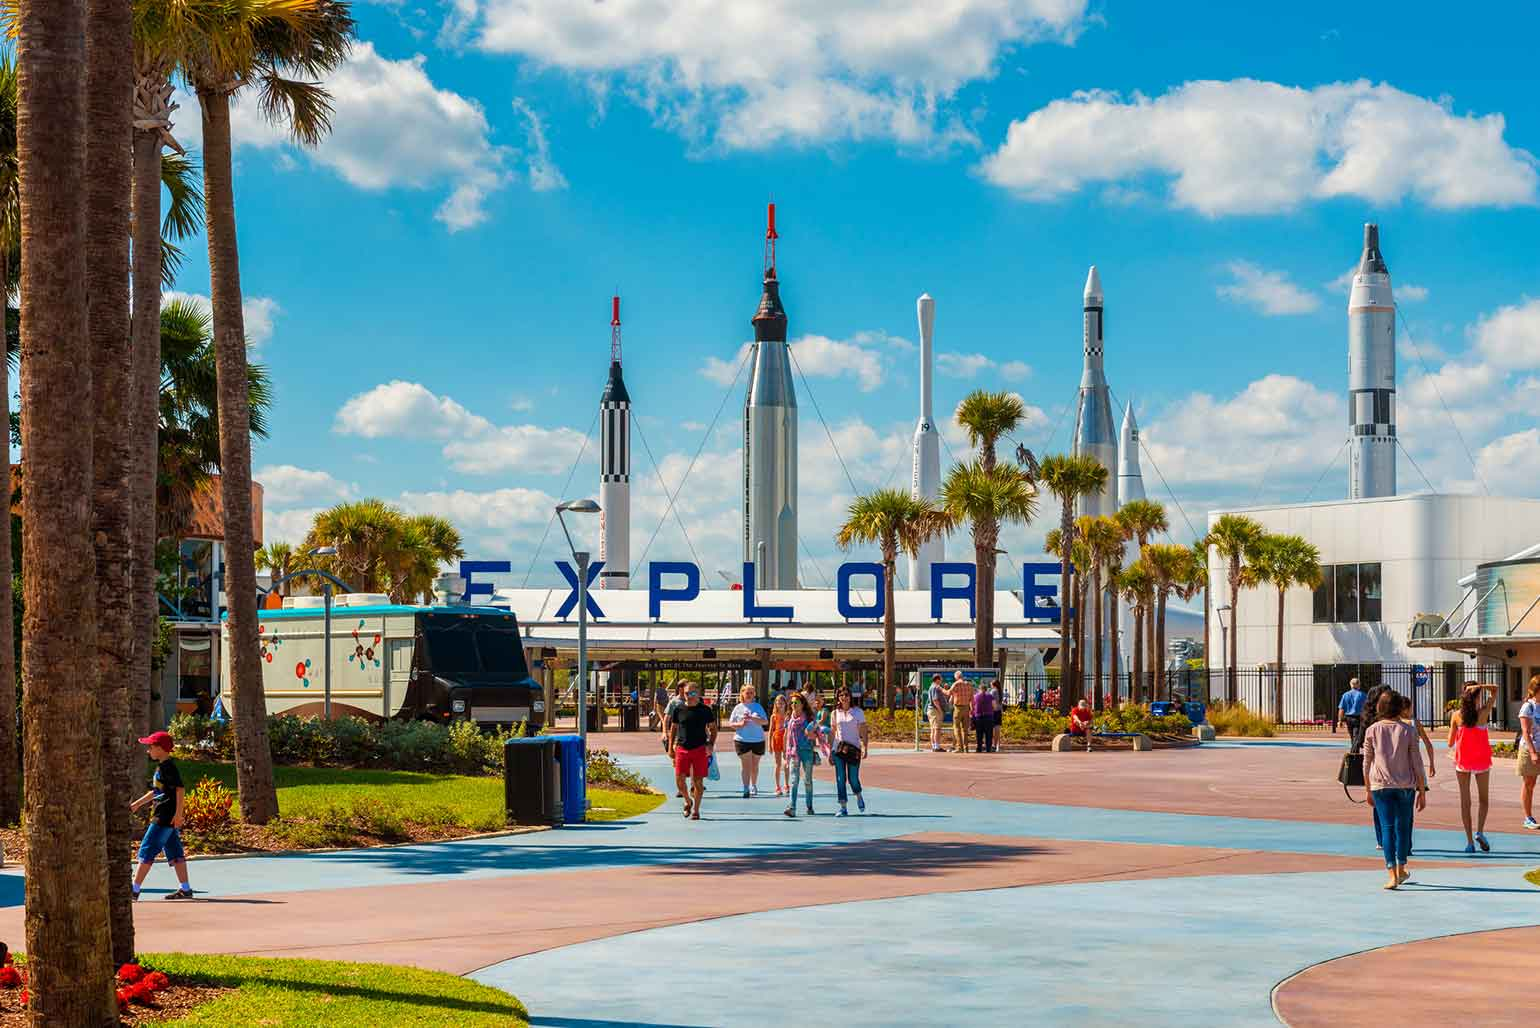 Canaveral's Kennedy Space Center